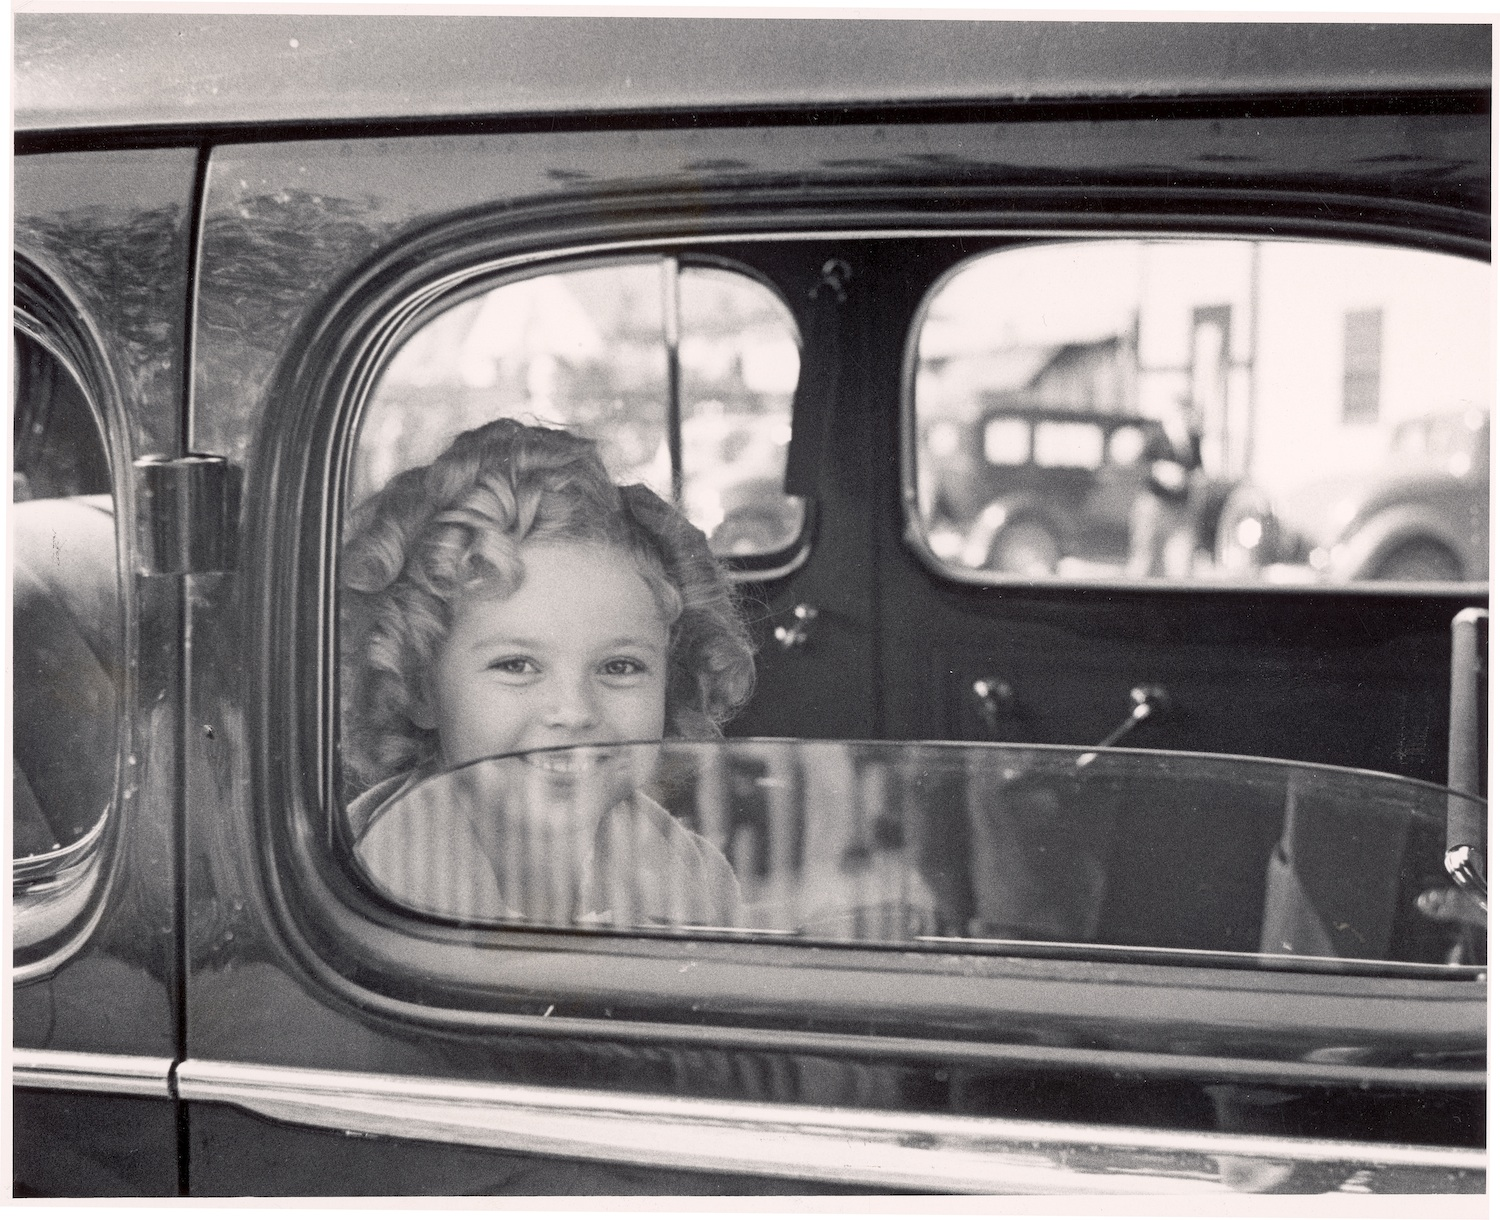 Shirley Temple arriving at 20th Century Fox film studio lot to celebrate her eighth birthday, in 1936.